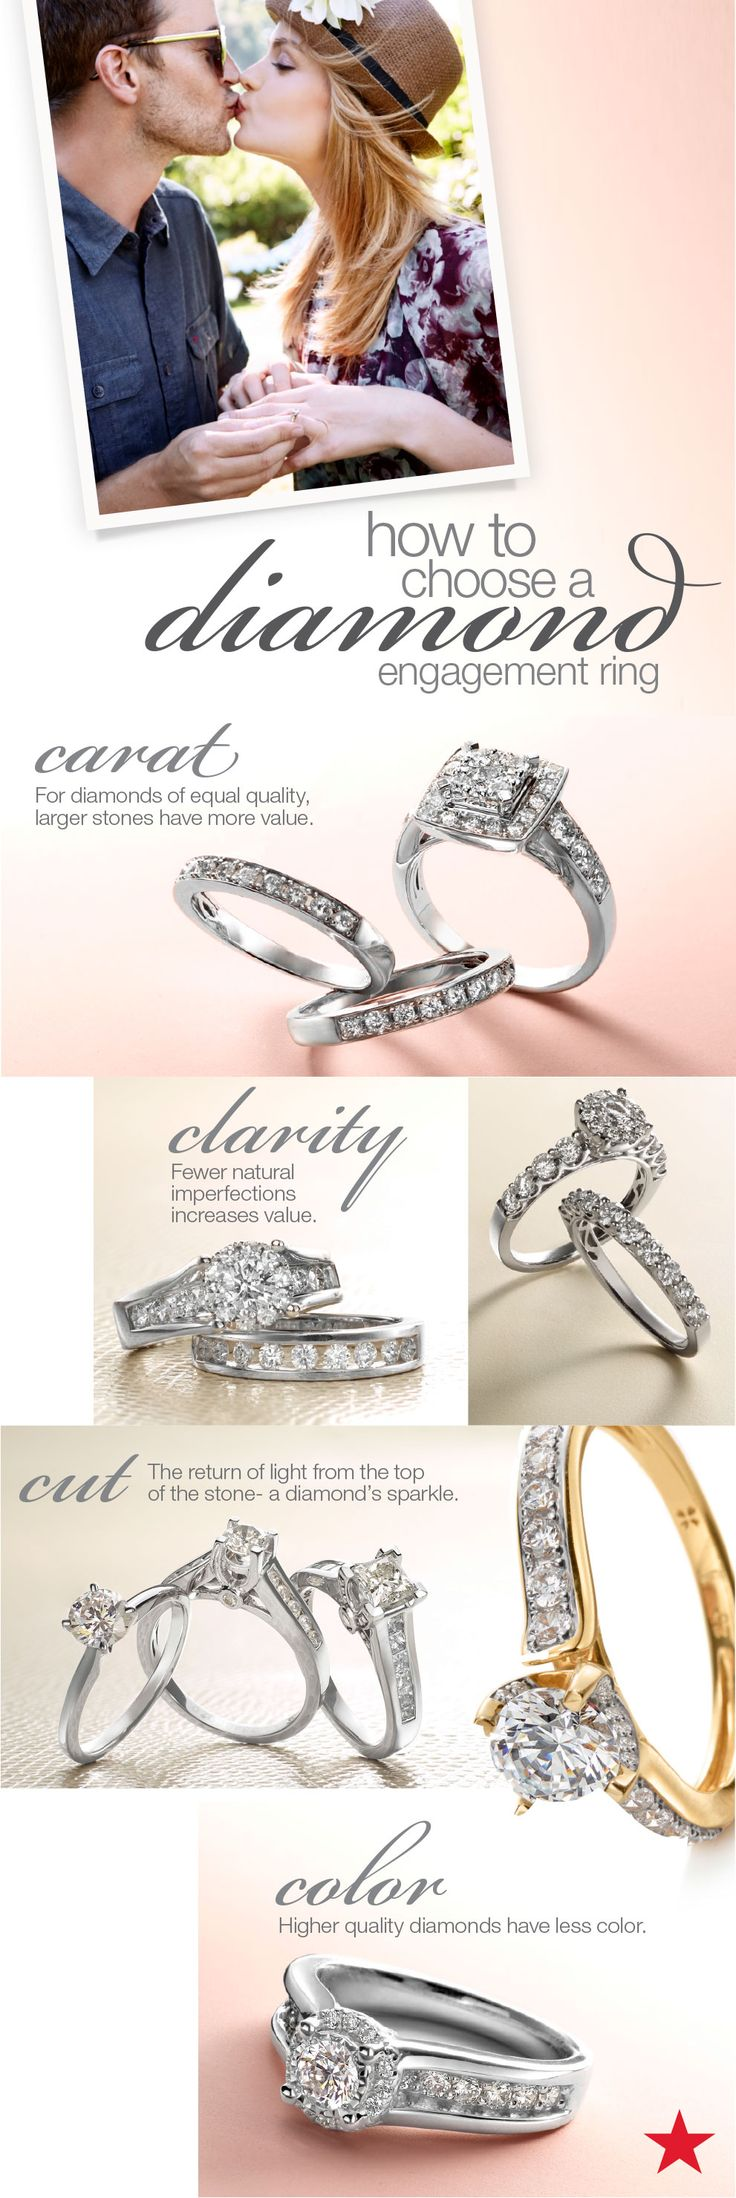 Choosing the diamond engagement ring of your dreams is no simple task But it